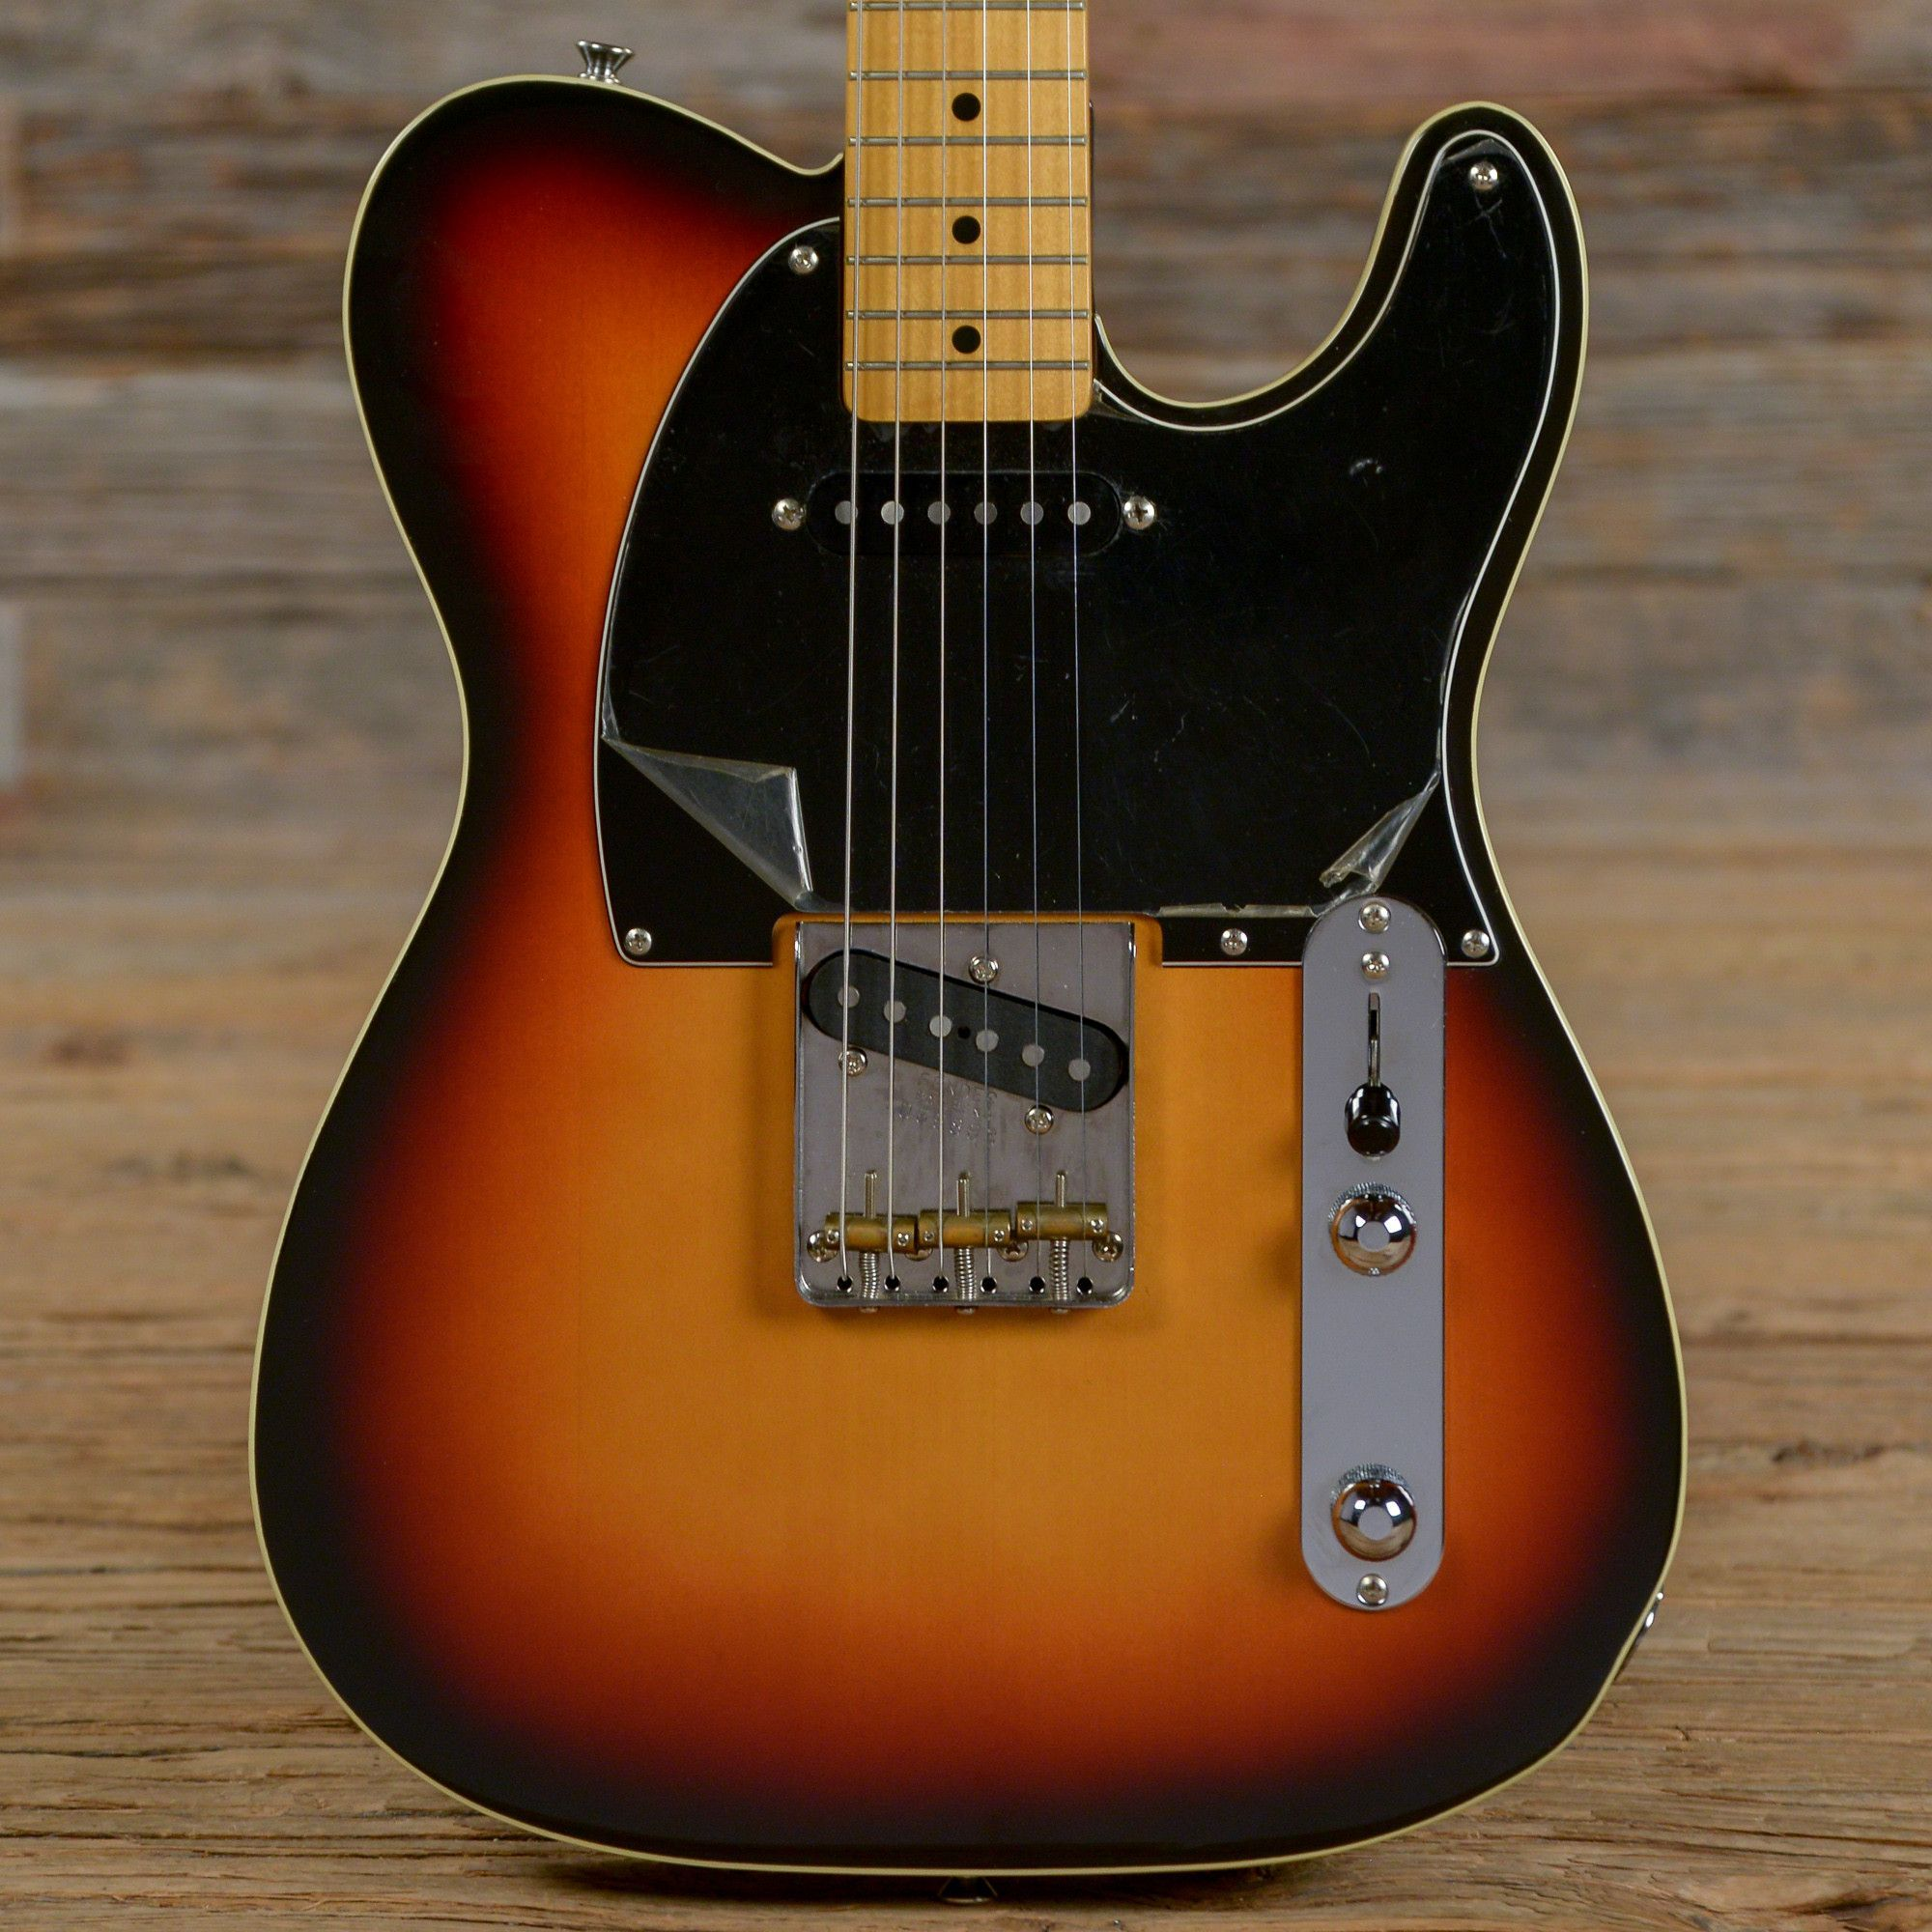 Fender Jerry Donahue Telecaster Wiring Diagram Electrical Japan Signature Sunburst 1998 S863 Jd